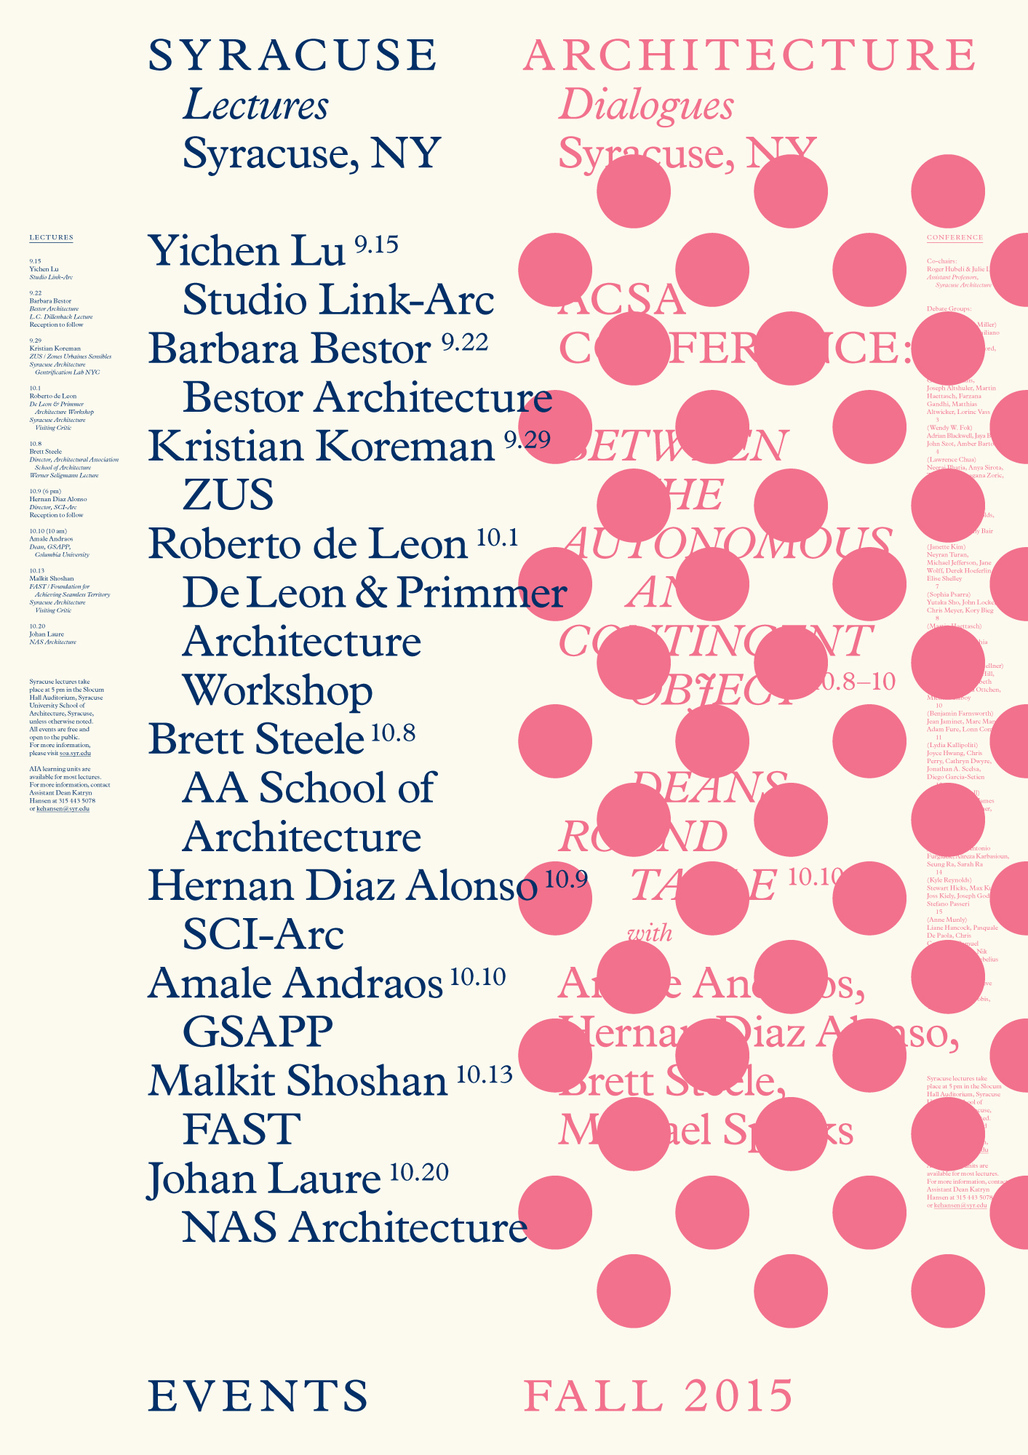 Syracuse Architecture Fall 2015 Lecture Series. Courtesy of Syracuse Architecture.